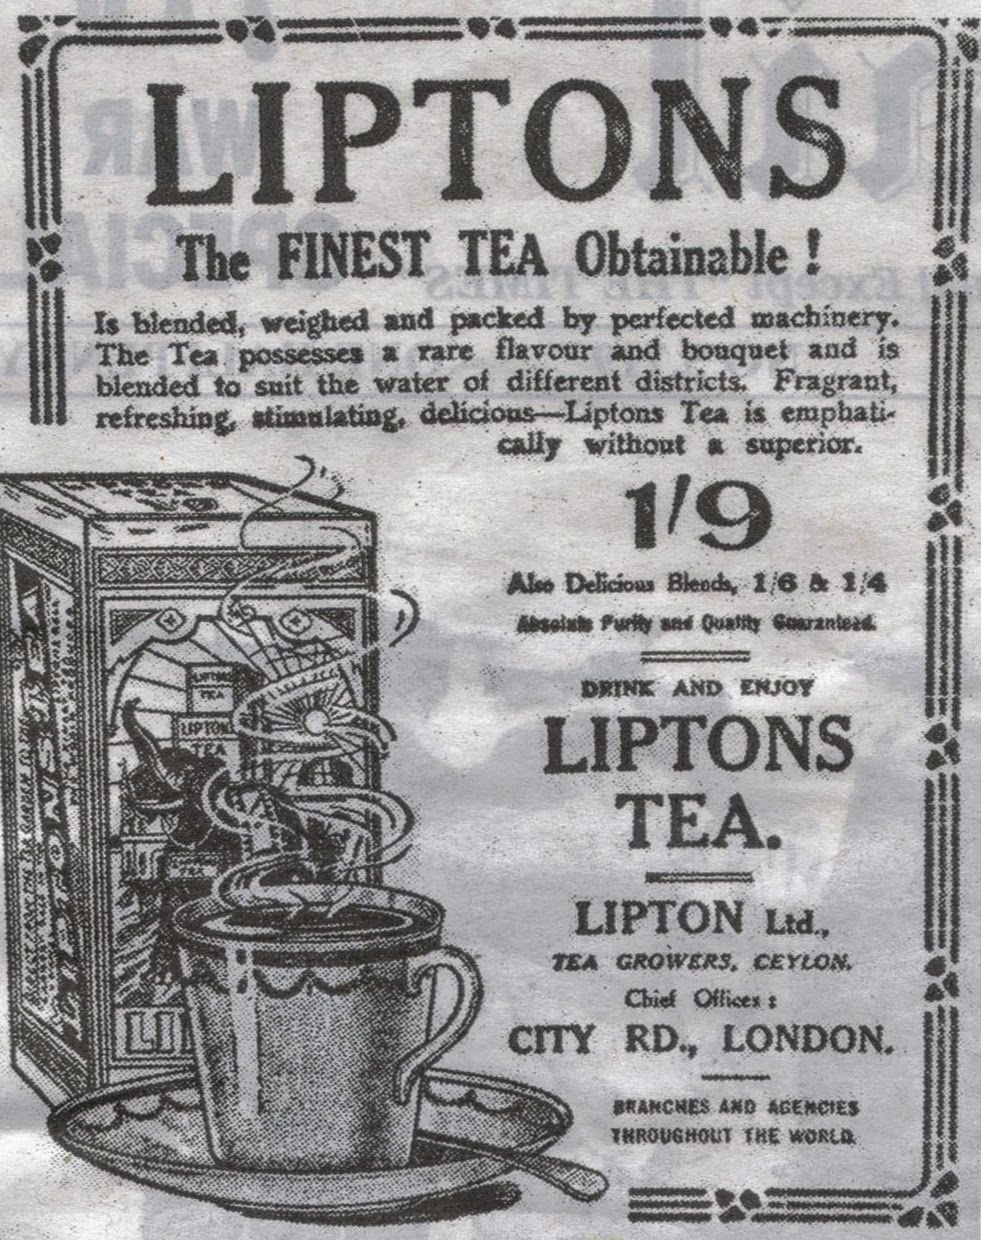 1914 advert for Lipton's tea